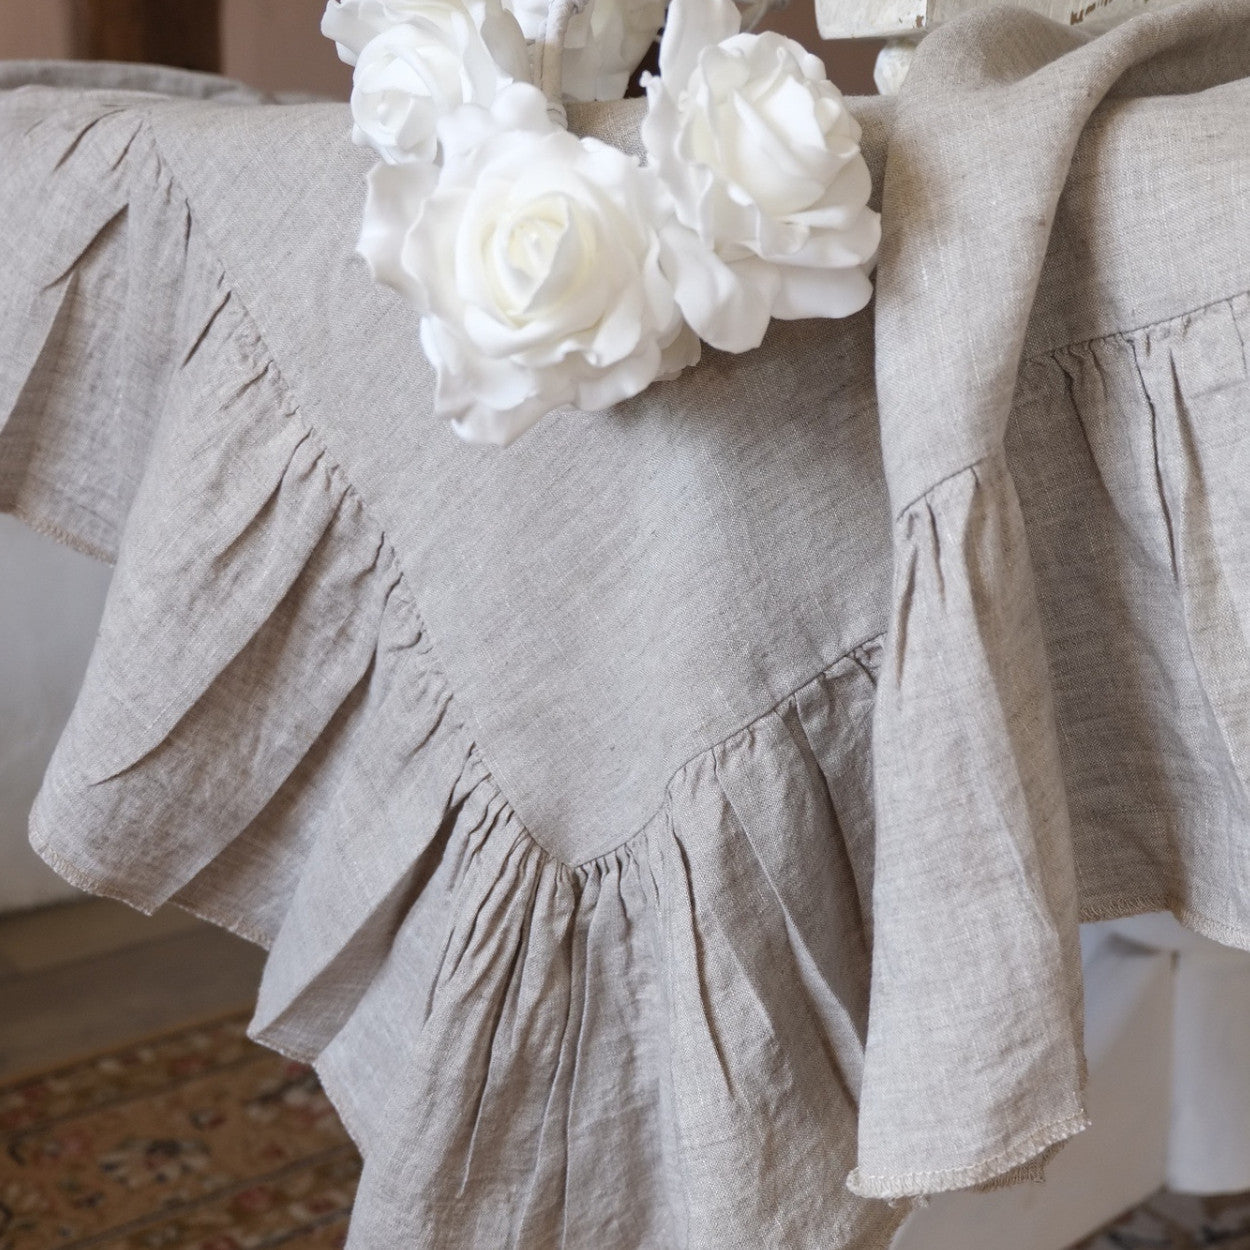 ... Washed Linen Tablecloth With Ruffles   Linen ...